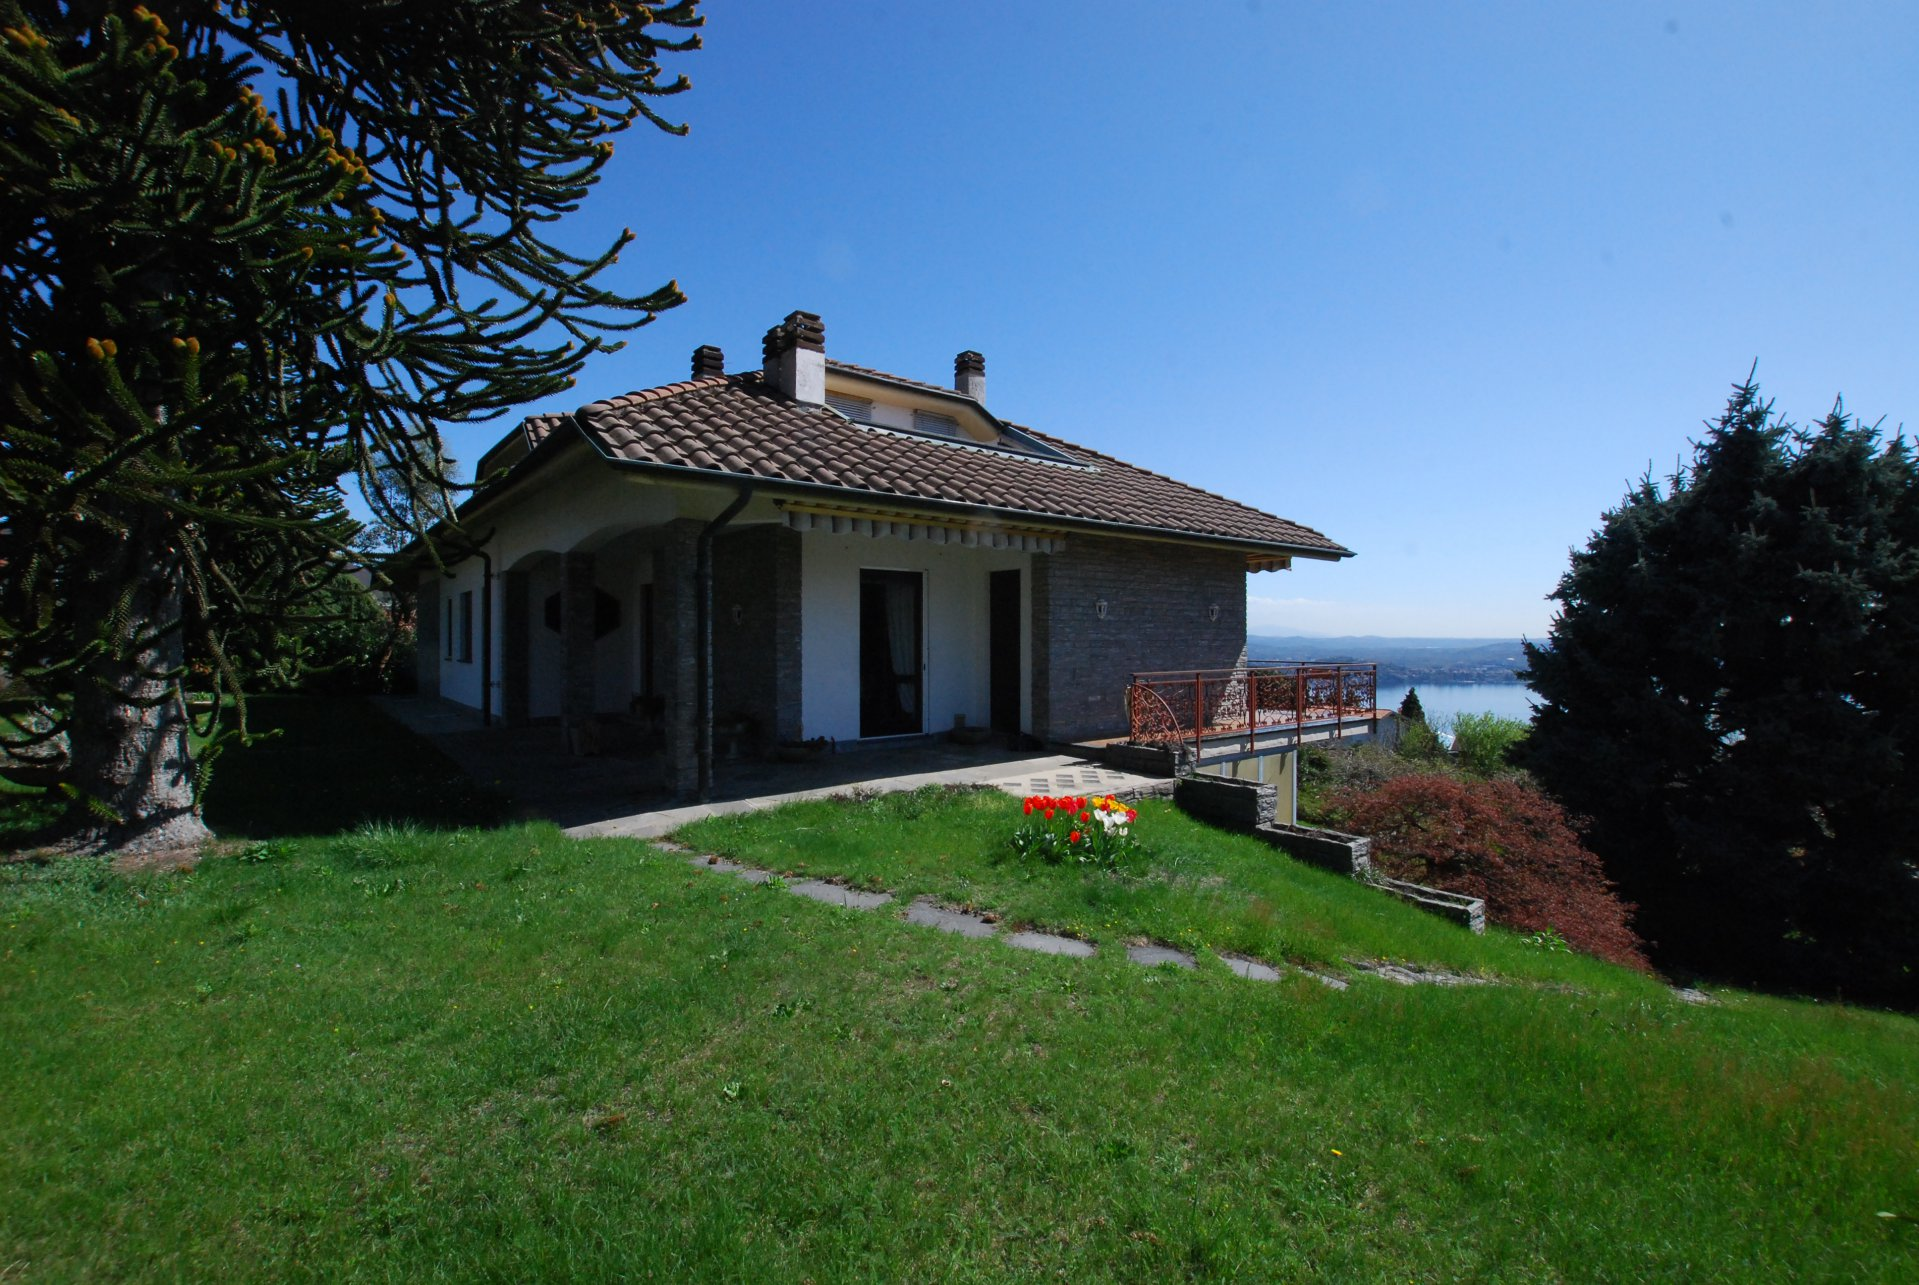 Wonderful lake view villa for sale in Massino Visconti - garden